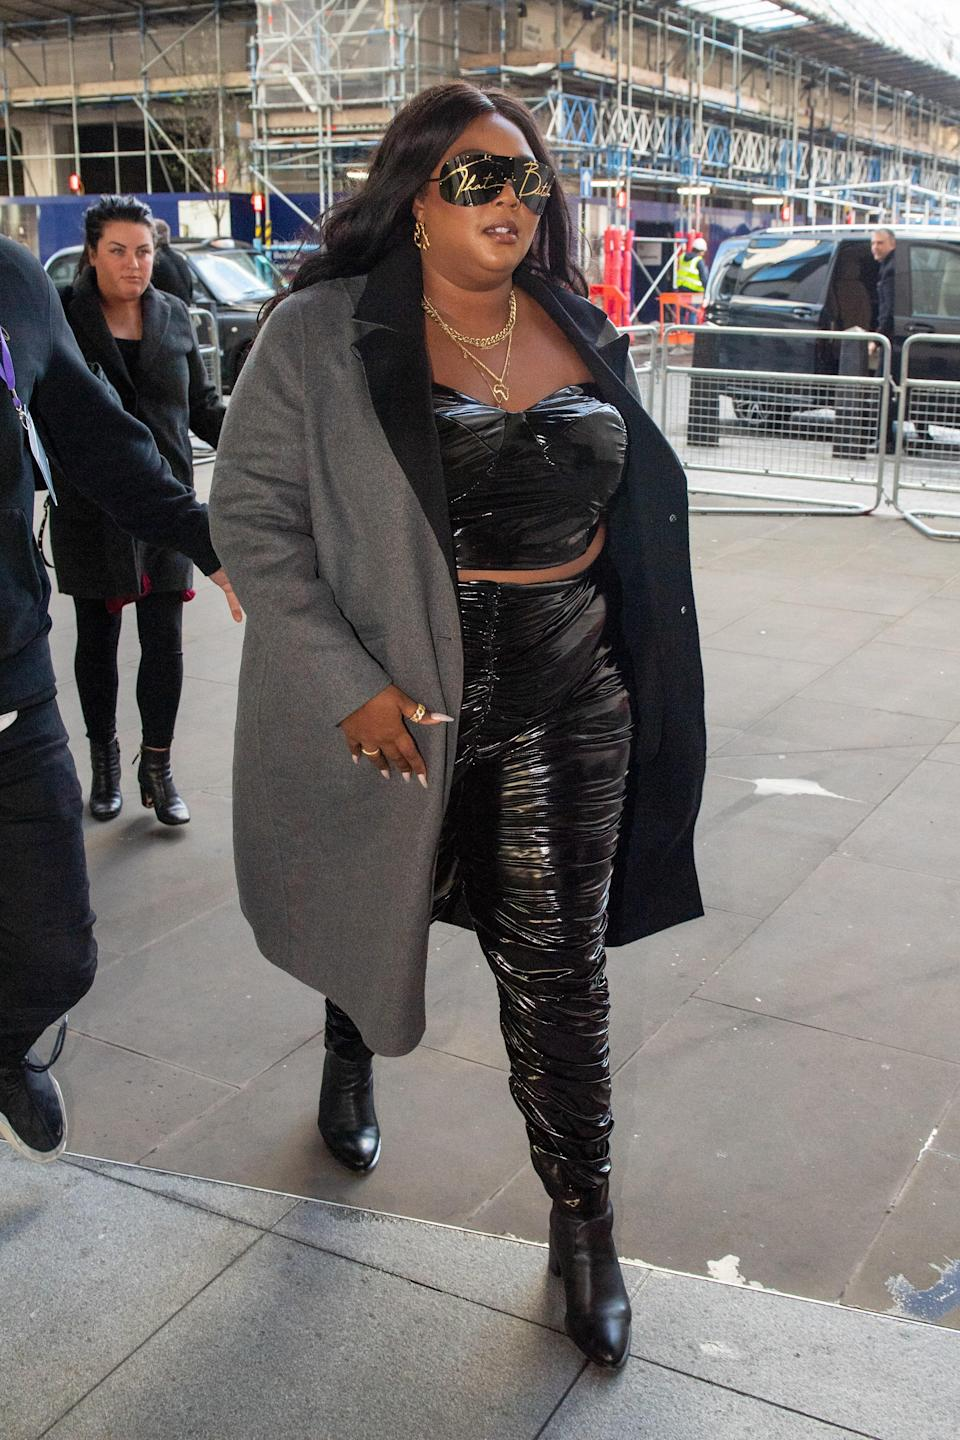 """Lizzo never misses the opportunity to make a fashion statement when she's on UK soil. For her appearance on BBC's Radio 1's Live Lounge, she donned black and gold sunglasses that were emblazoned with the words """"That Bitch."""""""